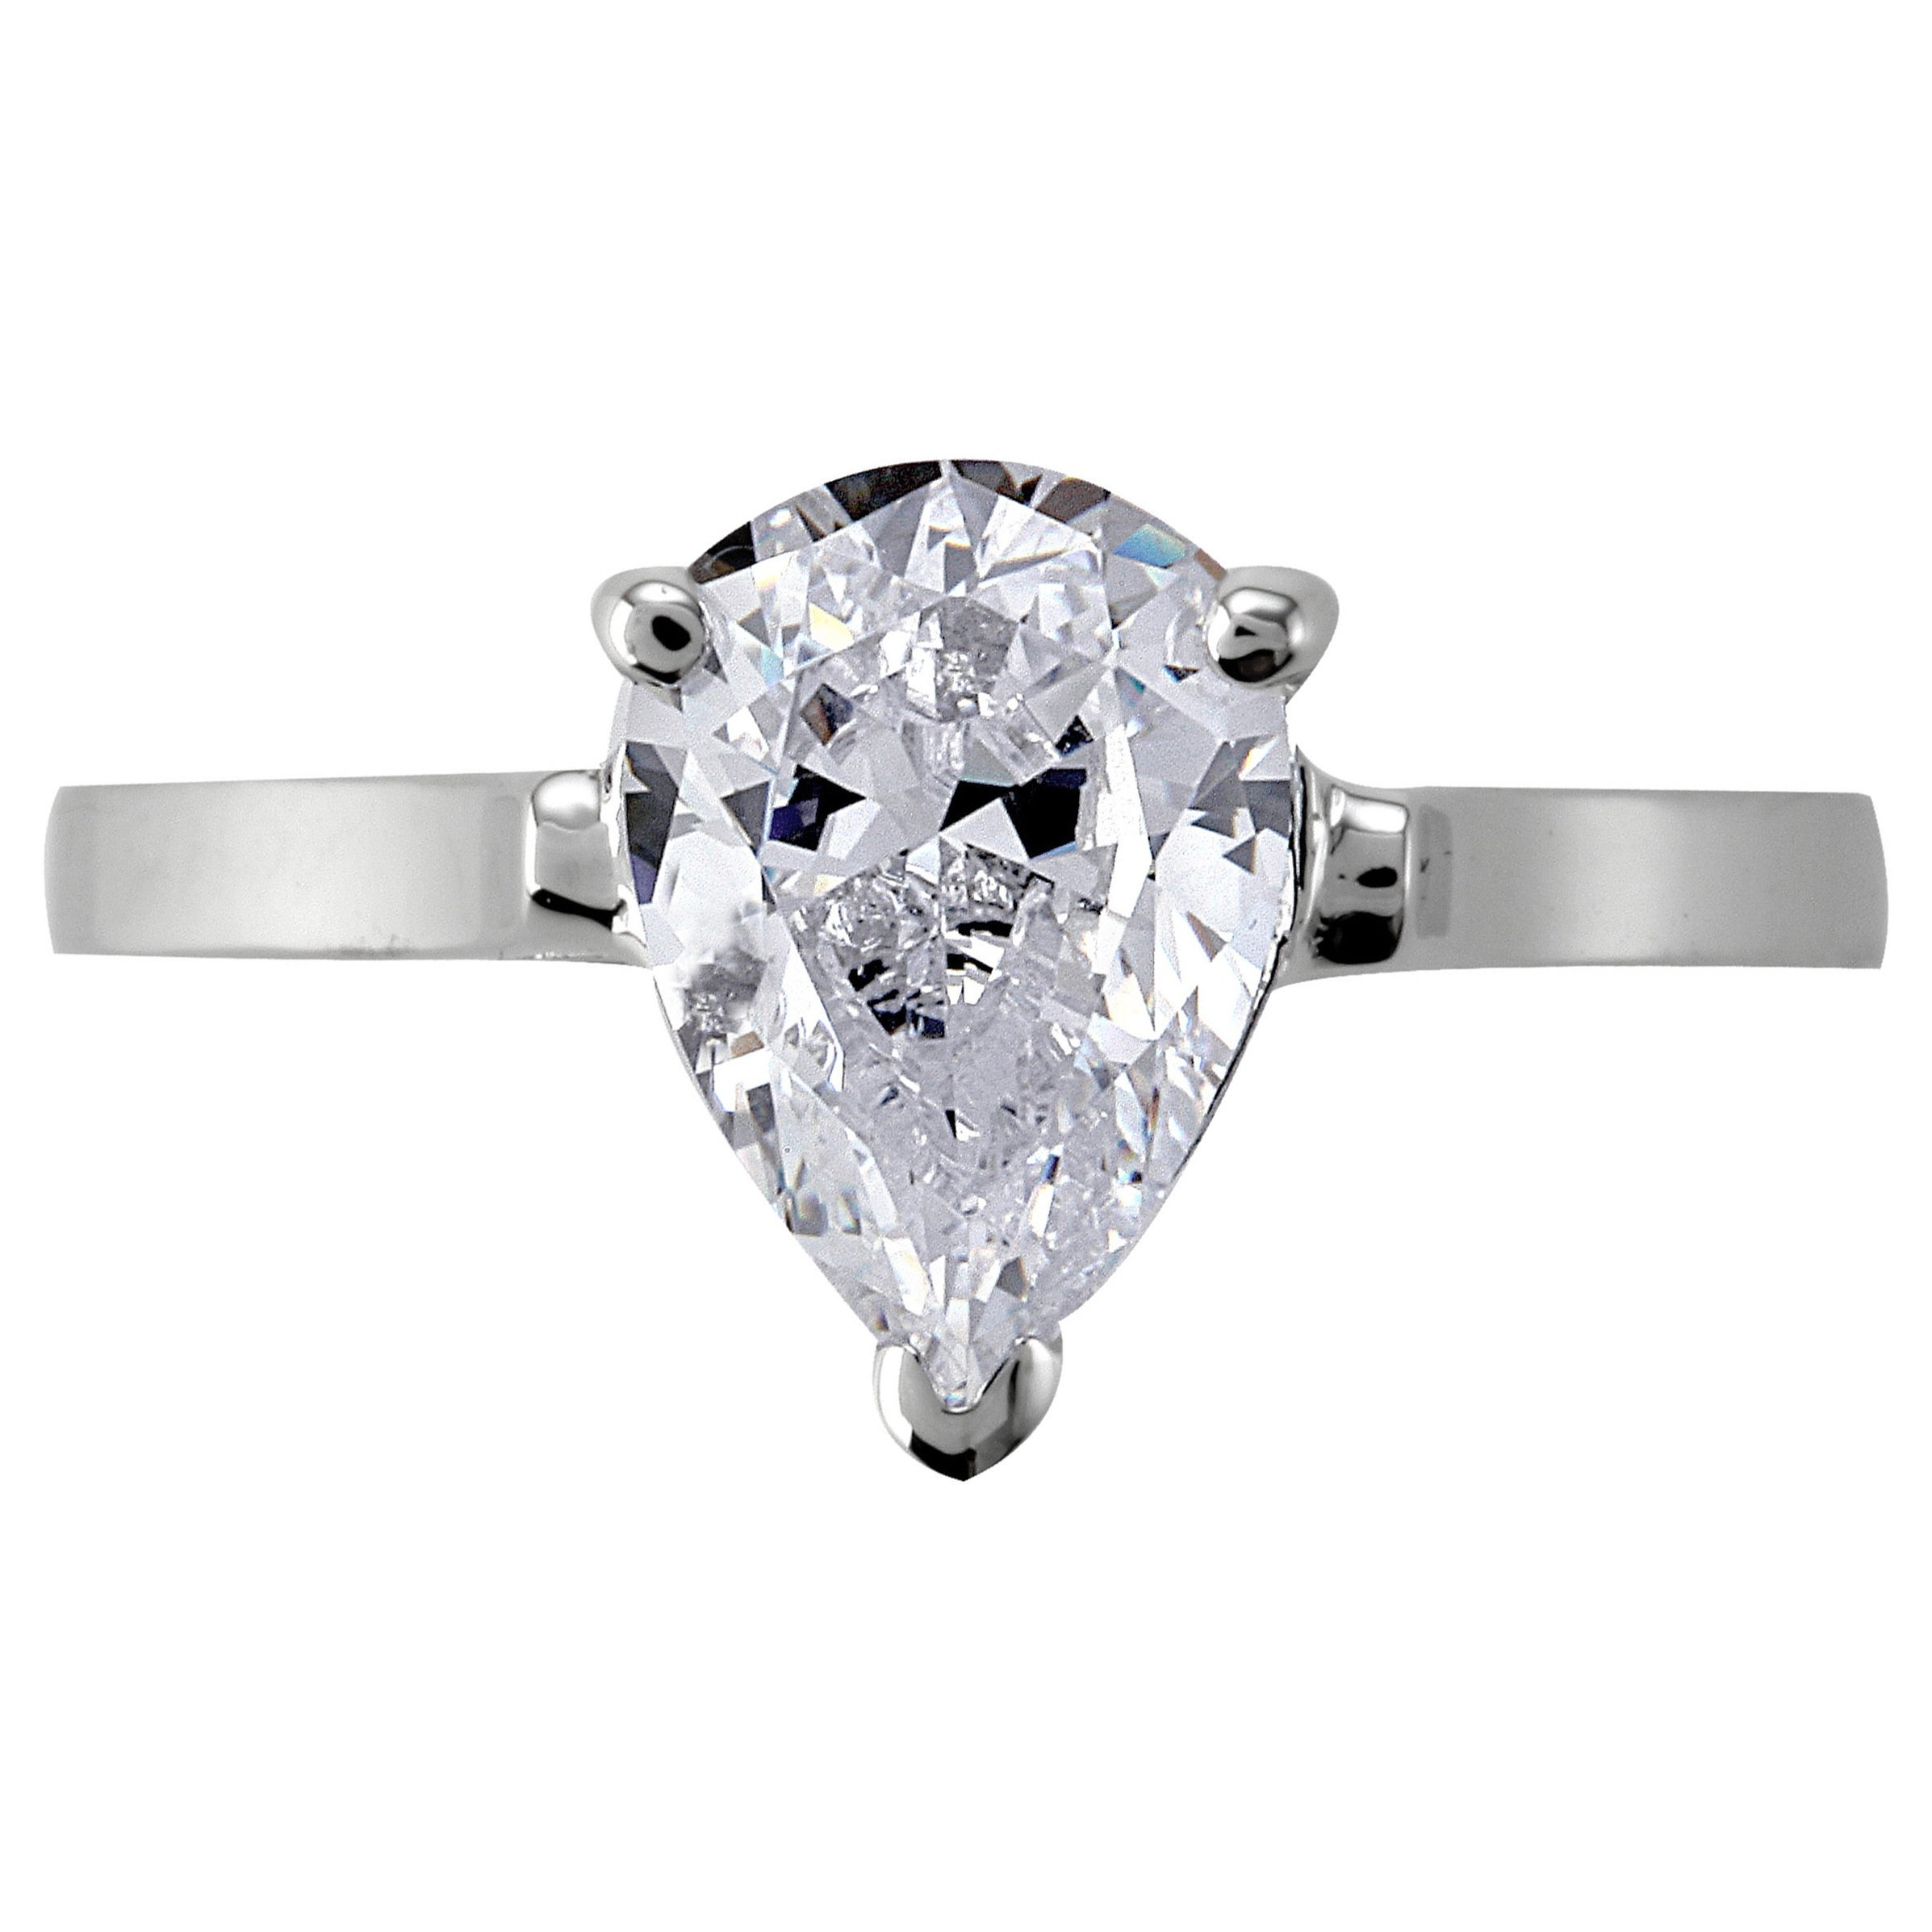 platinum collection ring shank shaped settings diamond cathedral within view of best rings engagement pear